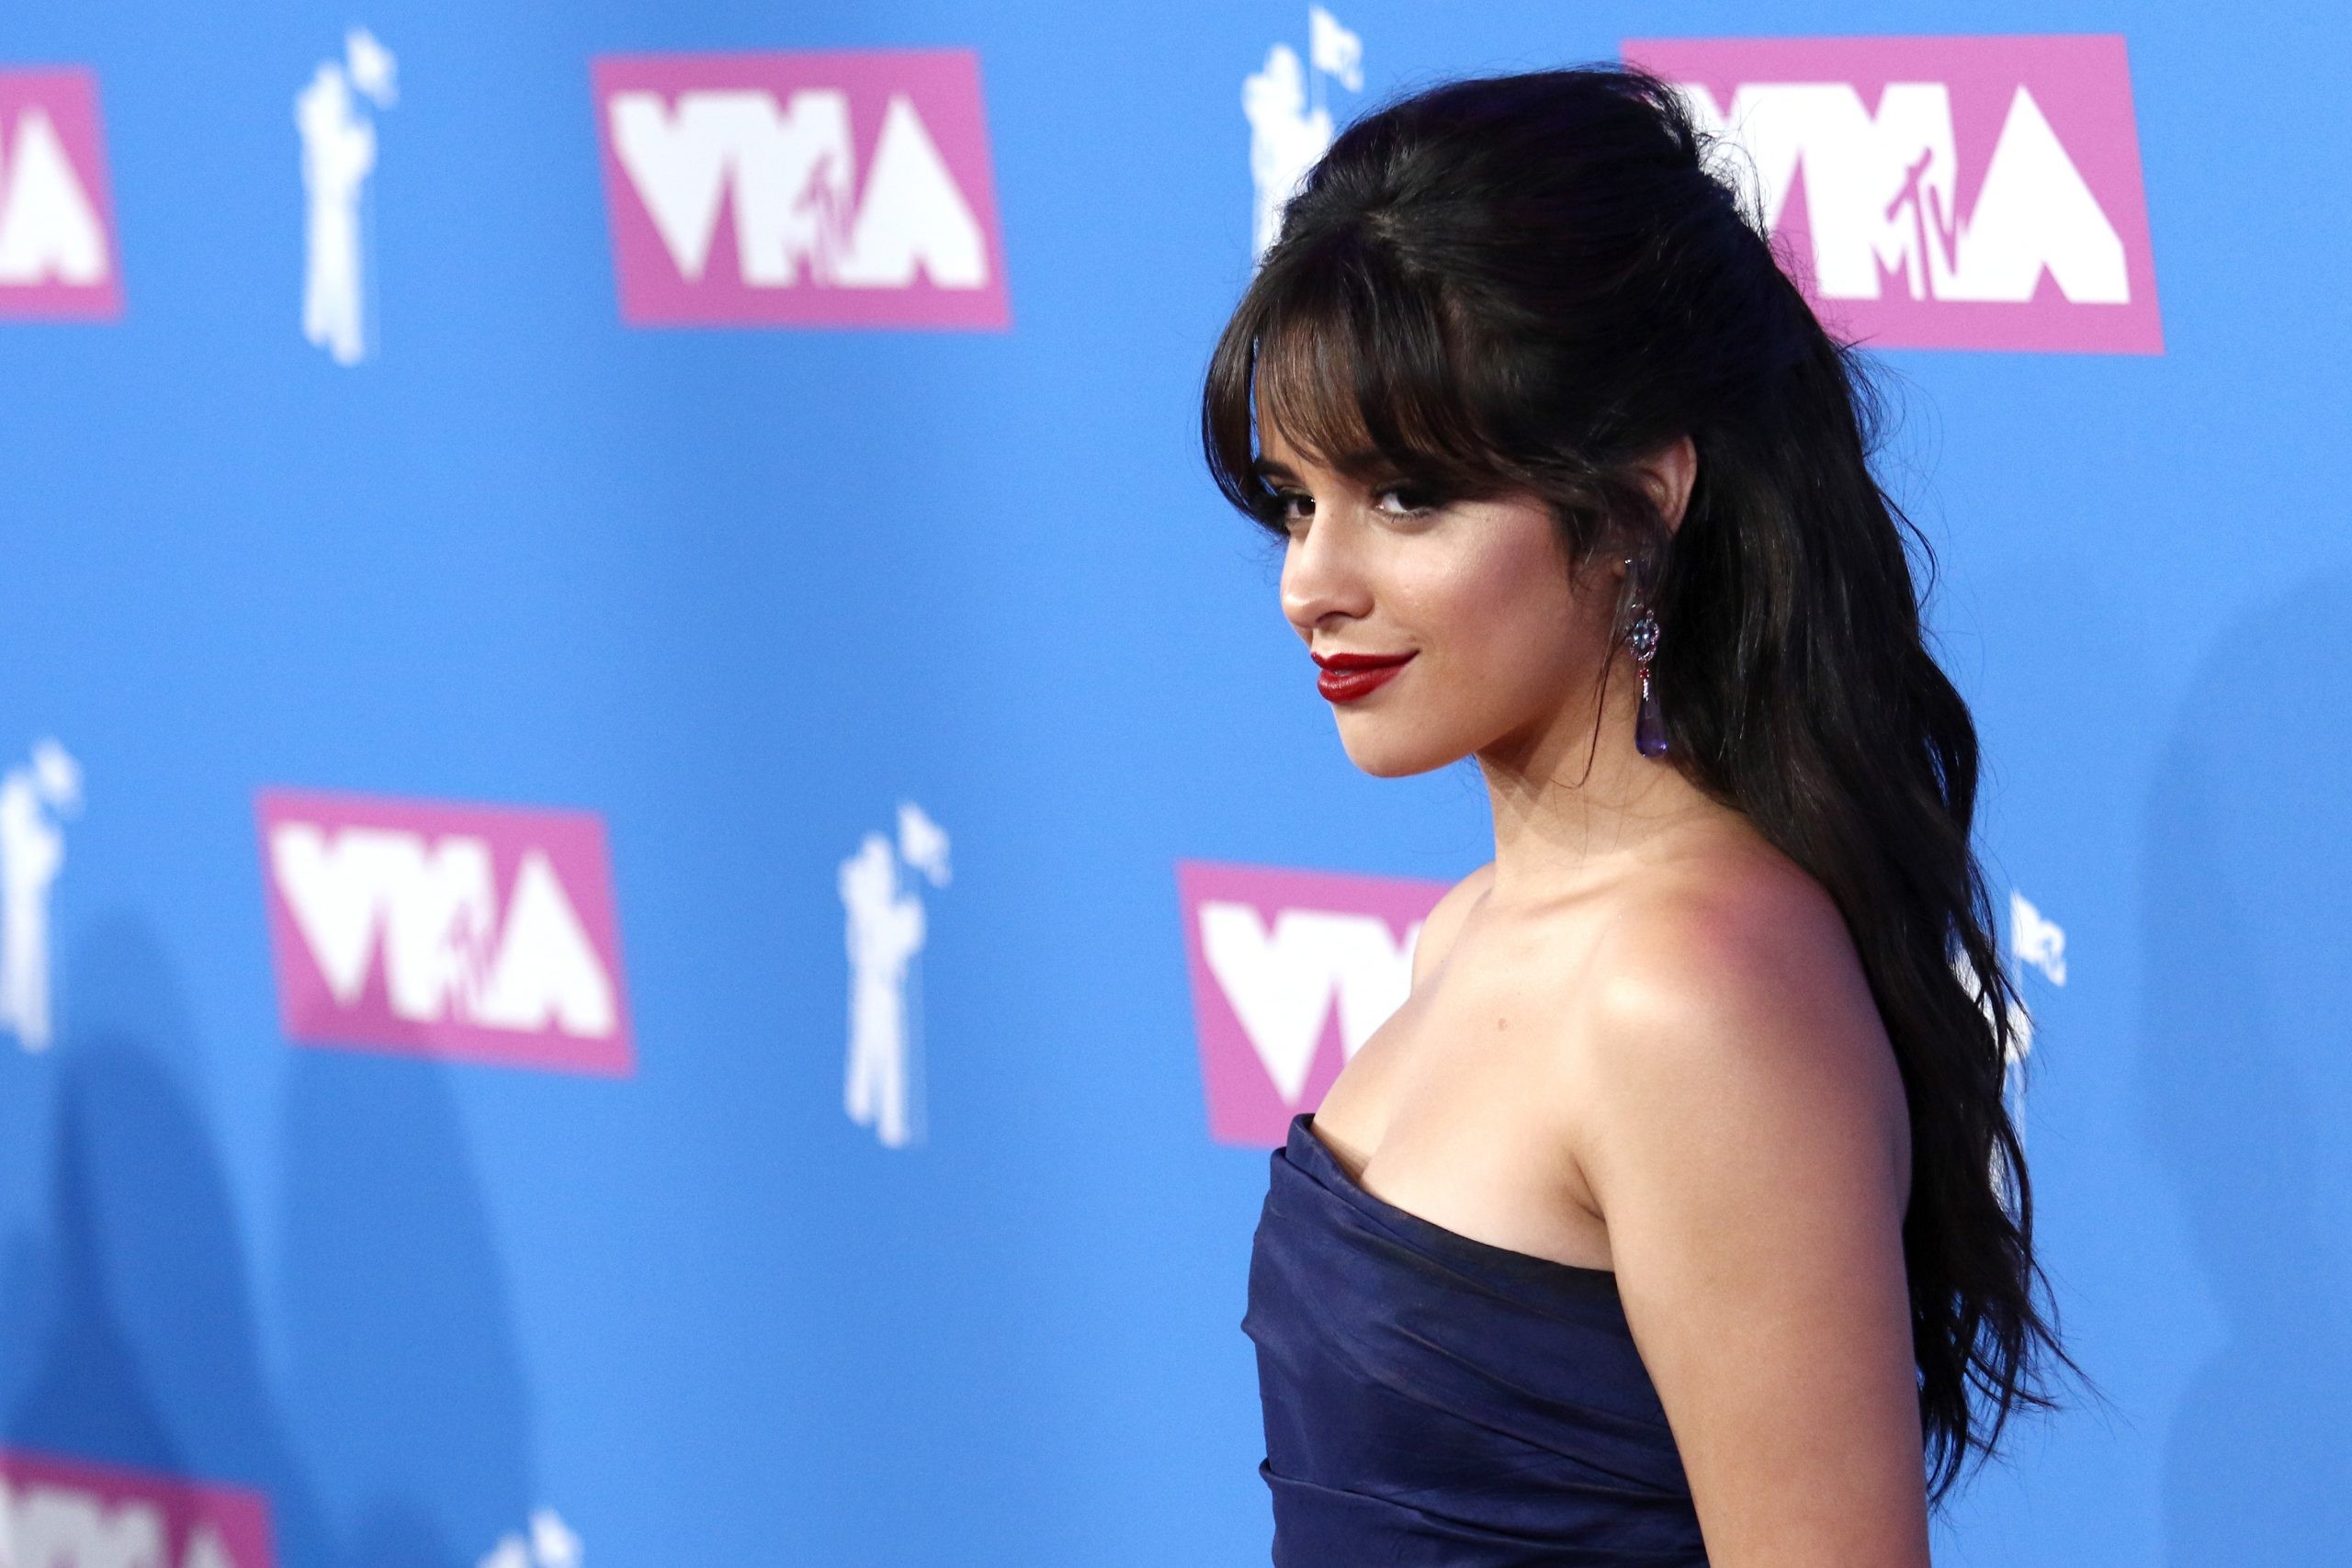 Camila Cabello (Photo: JStone/Shutterstock.com)